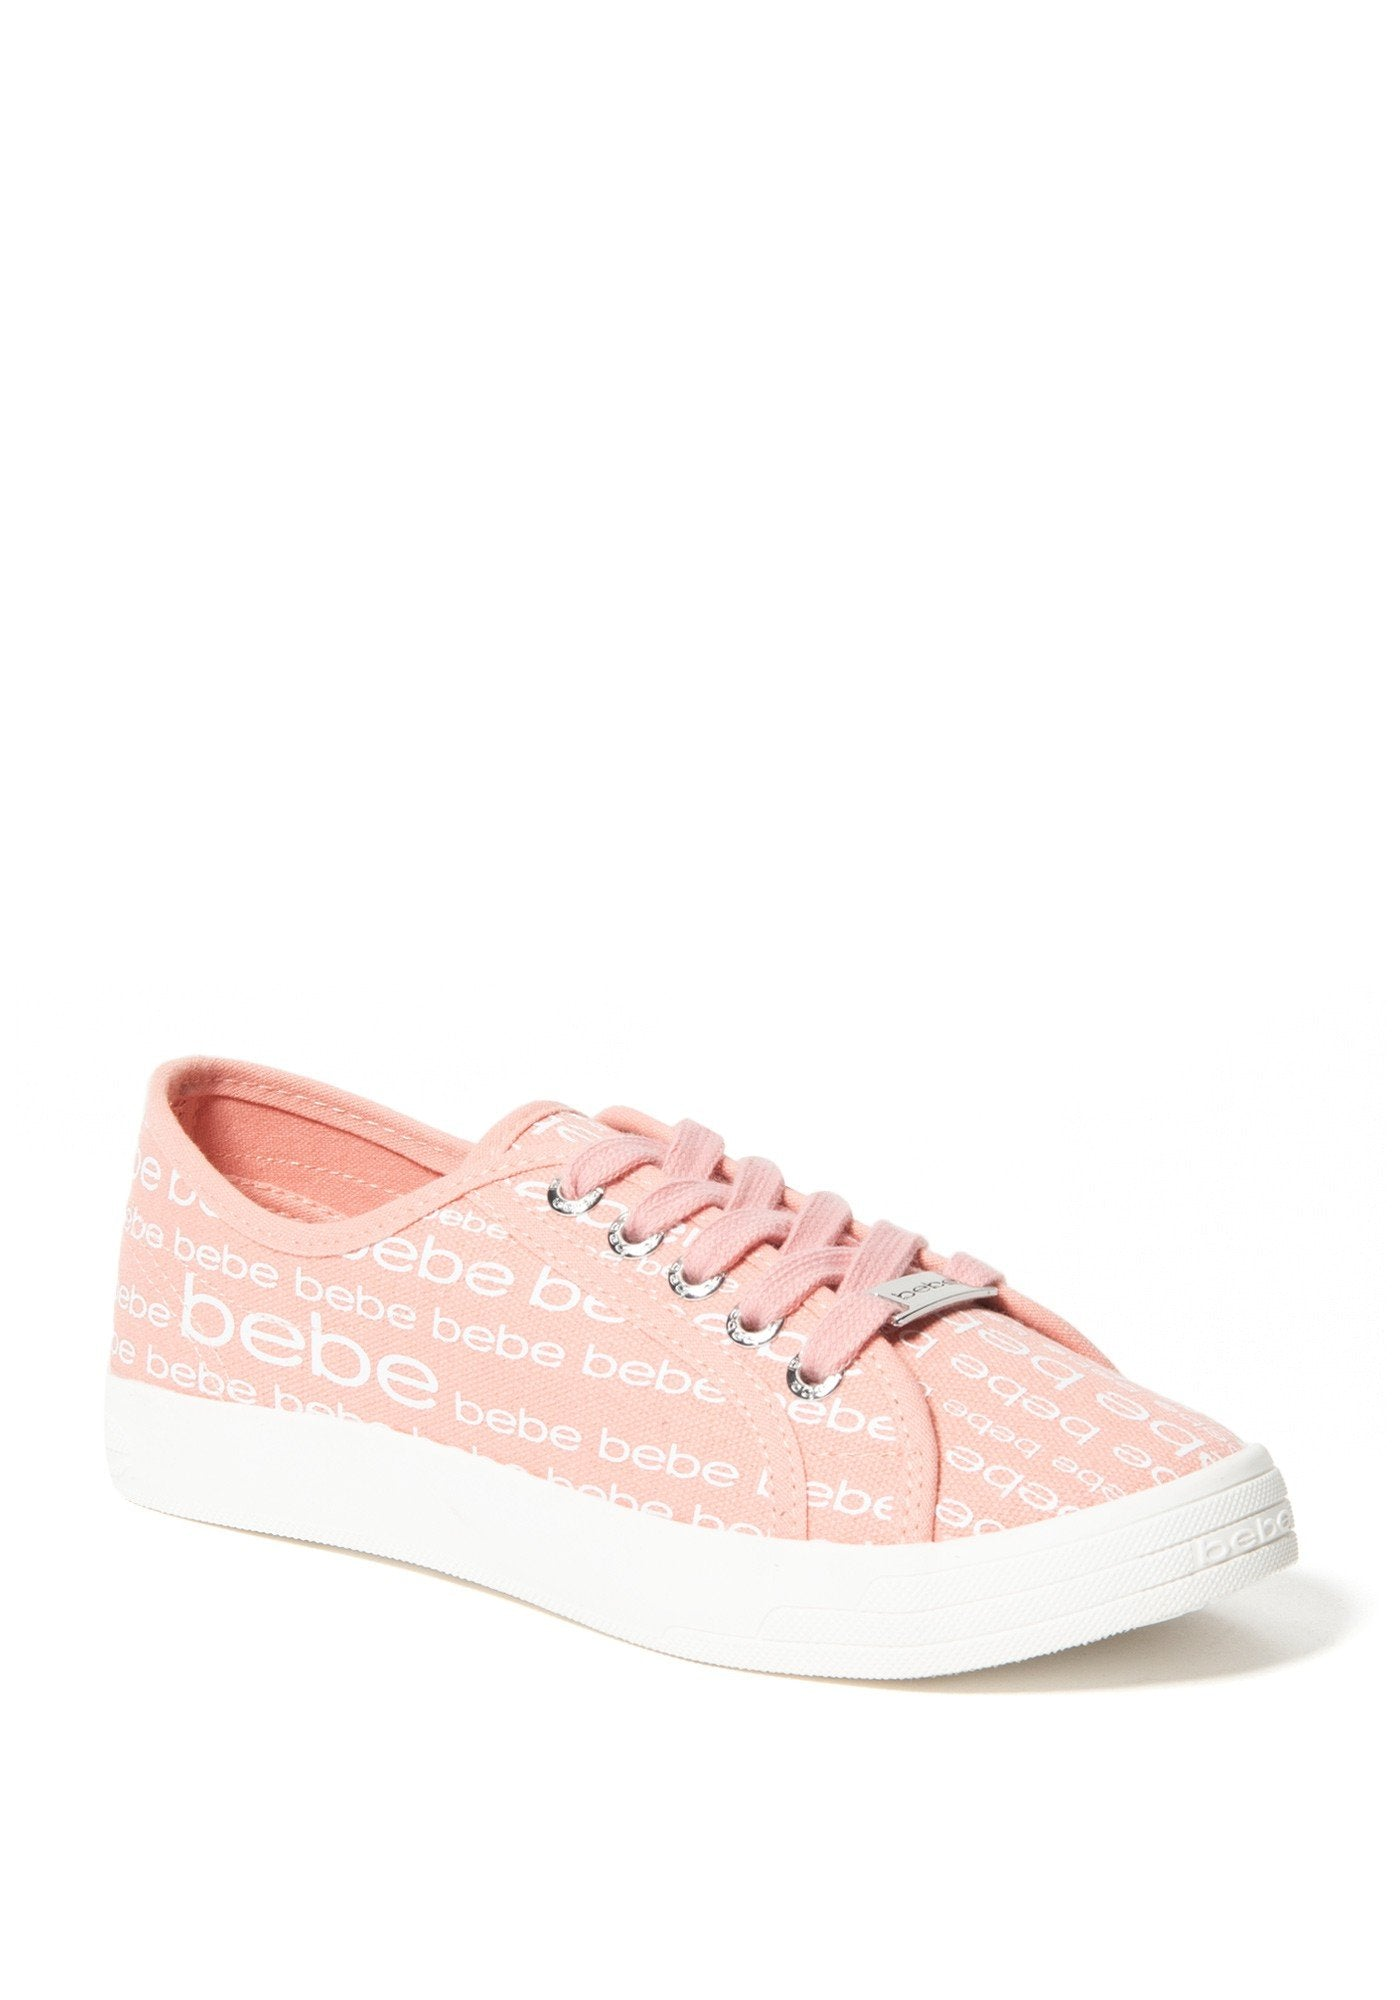 Bebe coupon: Bebe Women's Daylin Logo Sneakers, Size 10 in Pink Synthetic